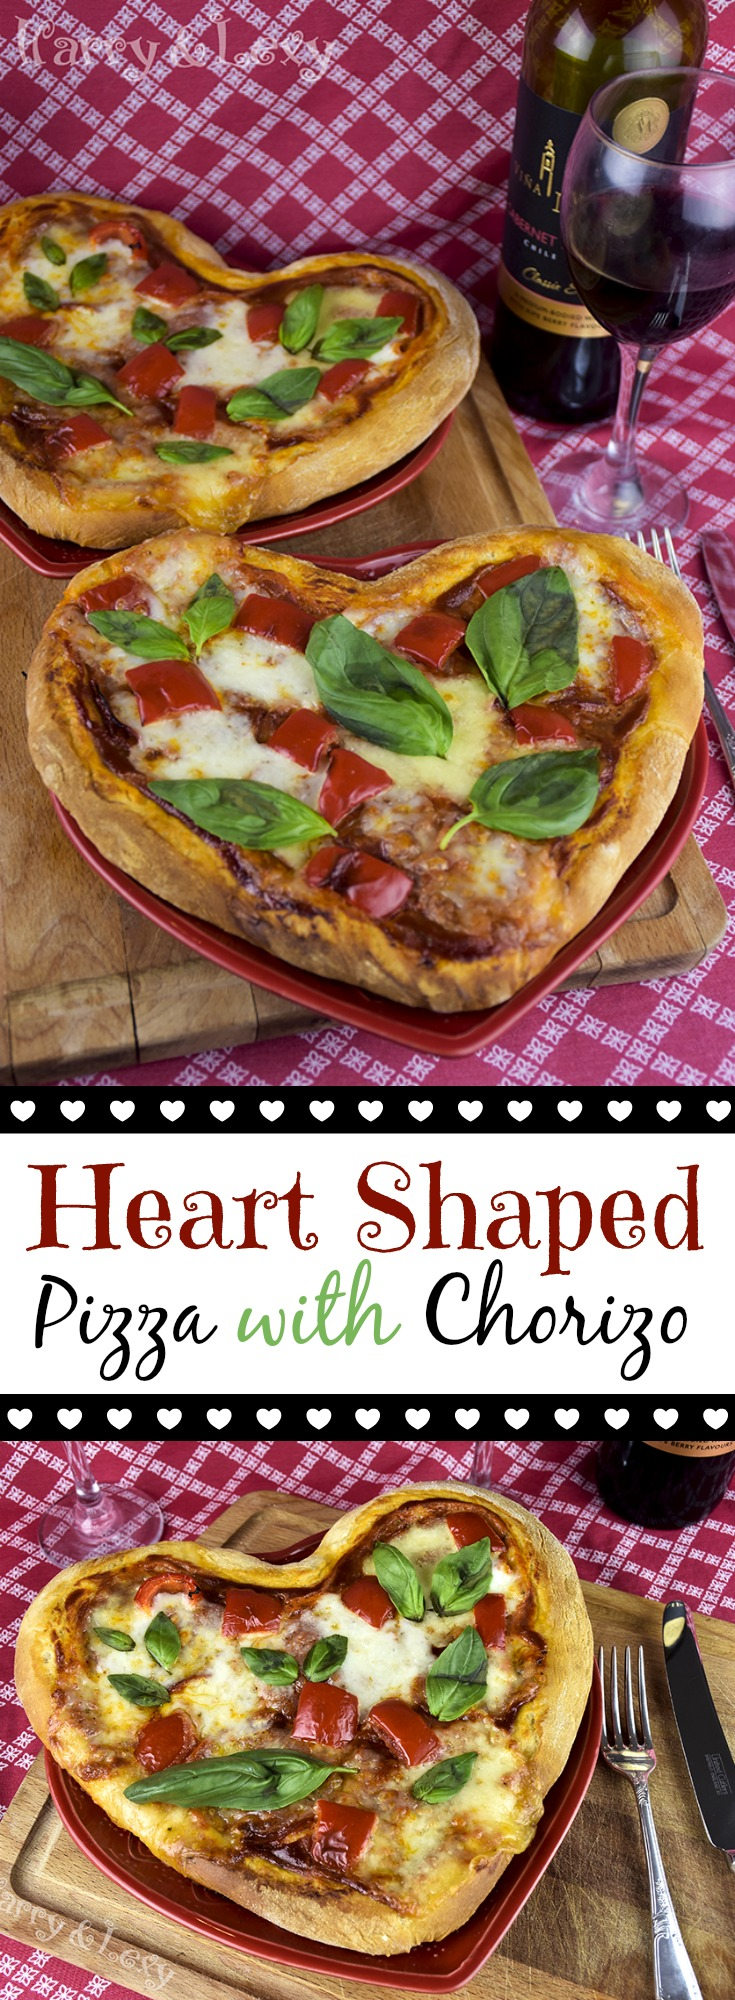 Heart Shaped Pizza with Chorizo